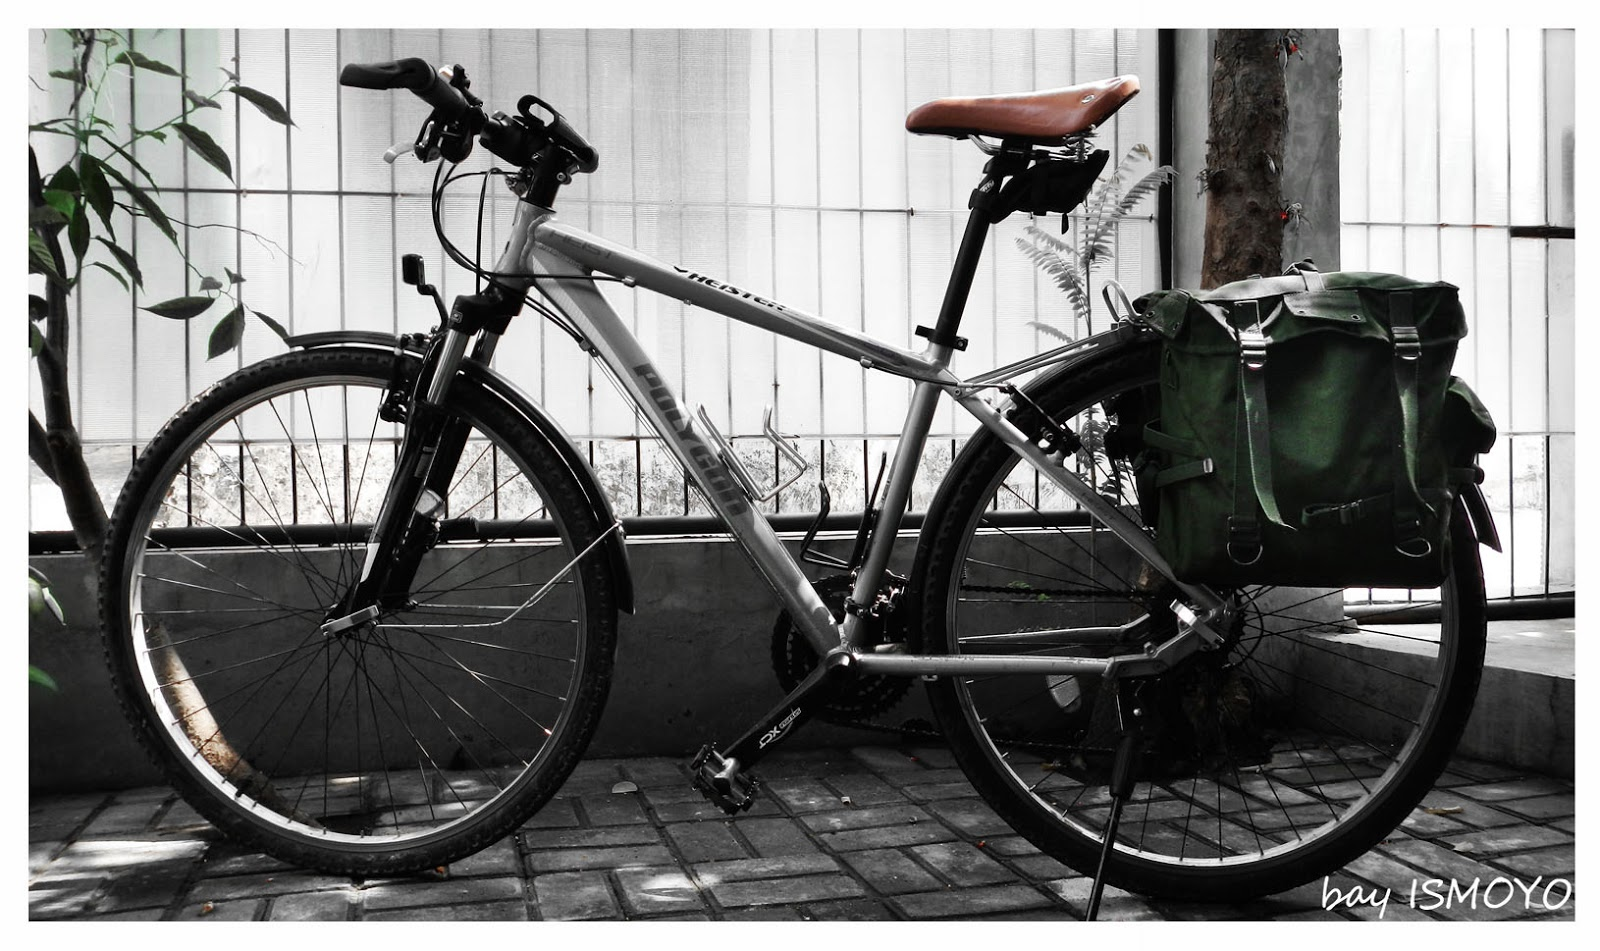 Me and Bicycle: Millitary bags as pannier DIY